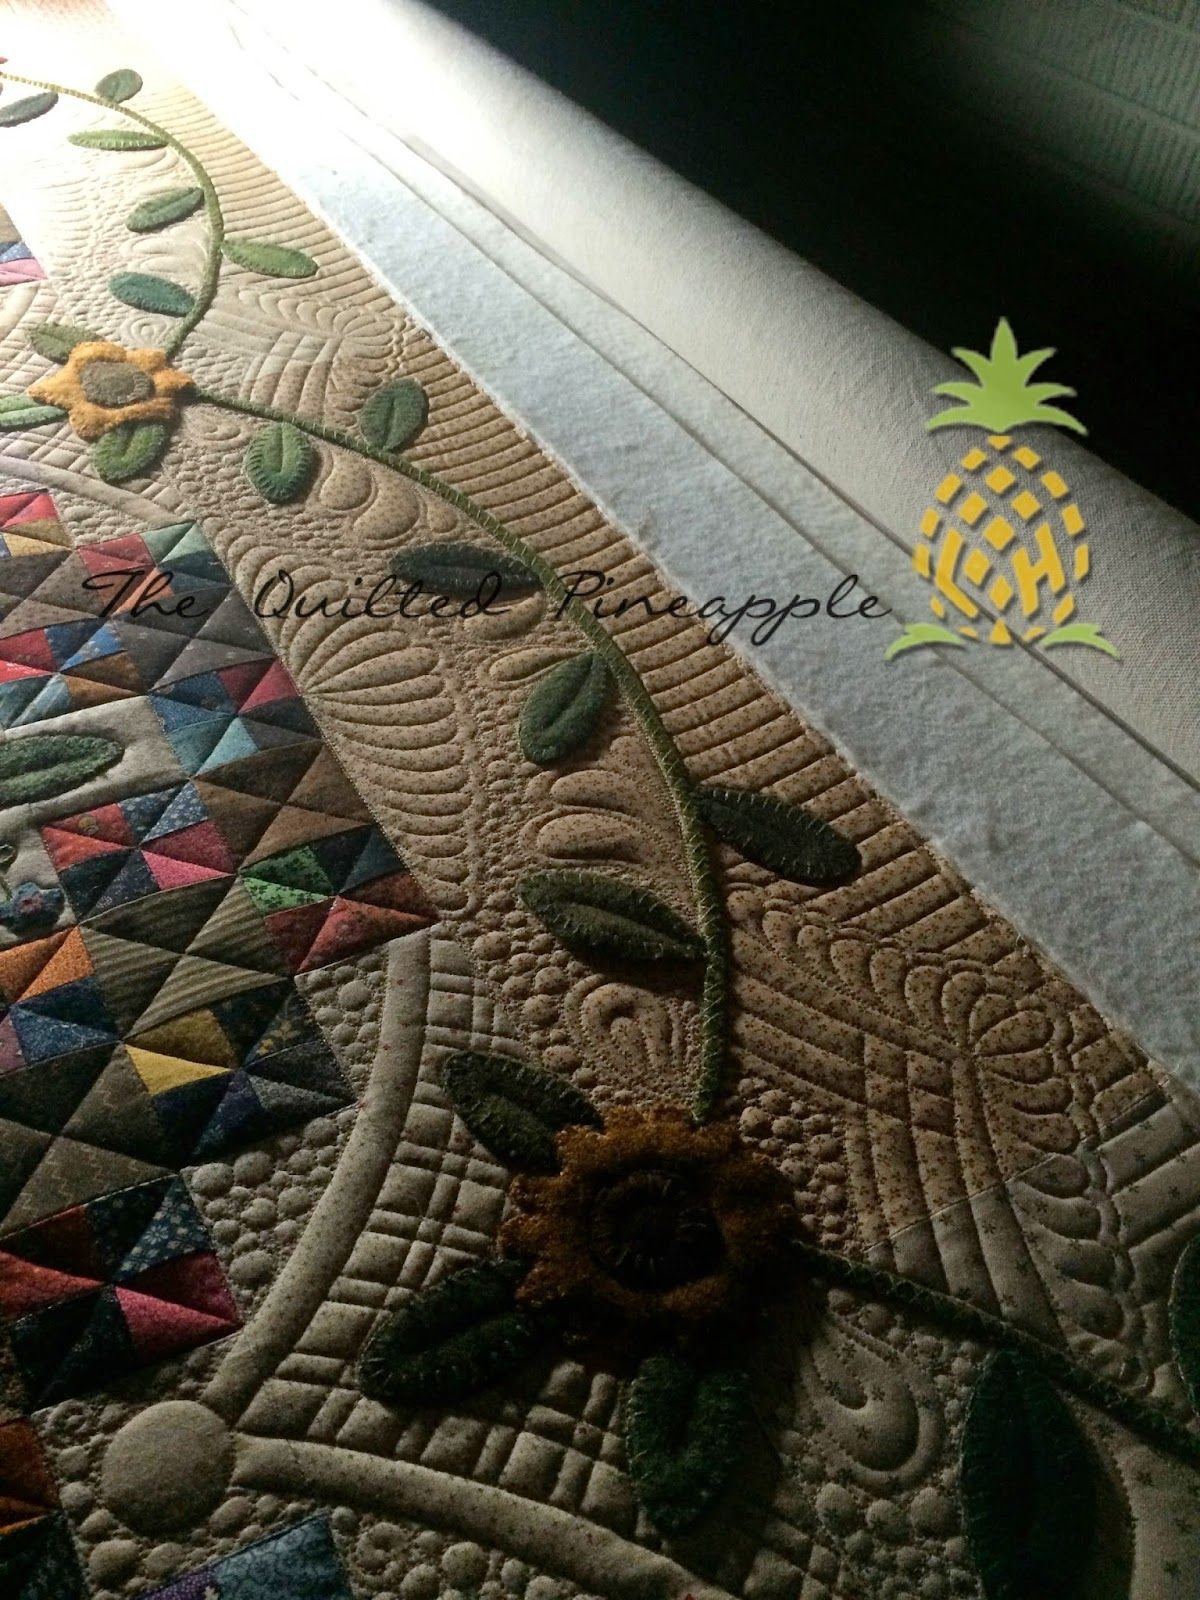 THE QUILTED PINEAPPLE: Sunflower Gatherings - Primitive Gatherings SBOW 2014--Gorgeous quilting by Linda at The Quilted Pineapple!